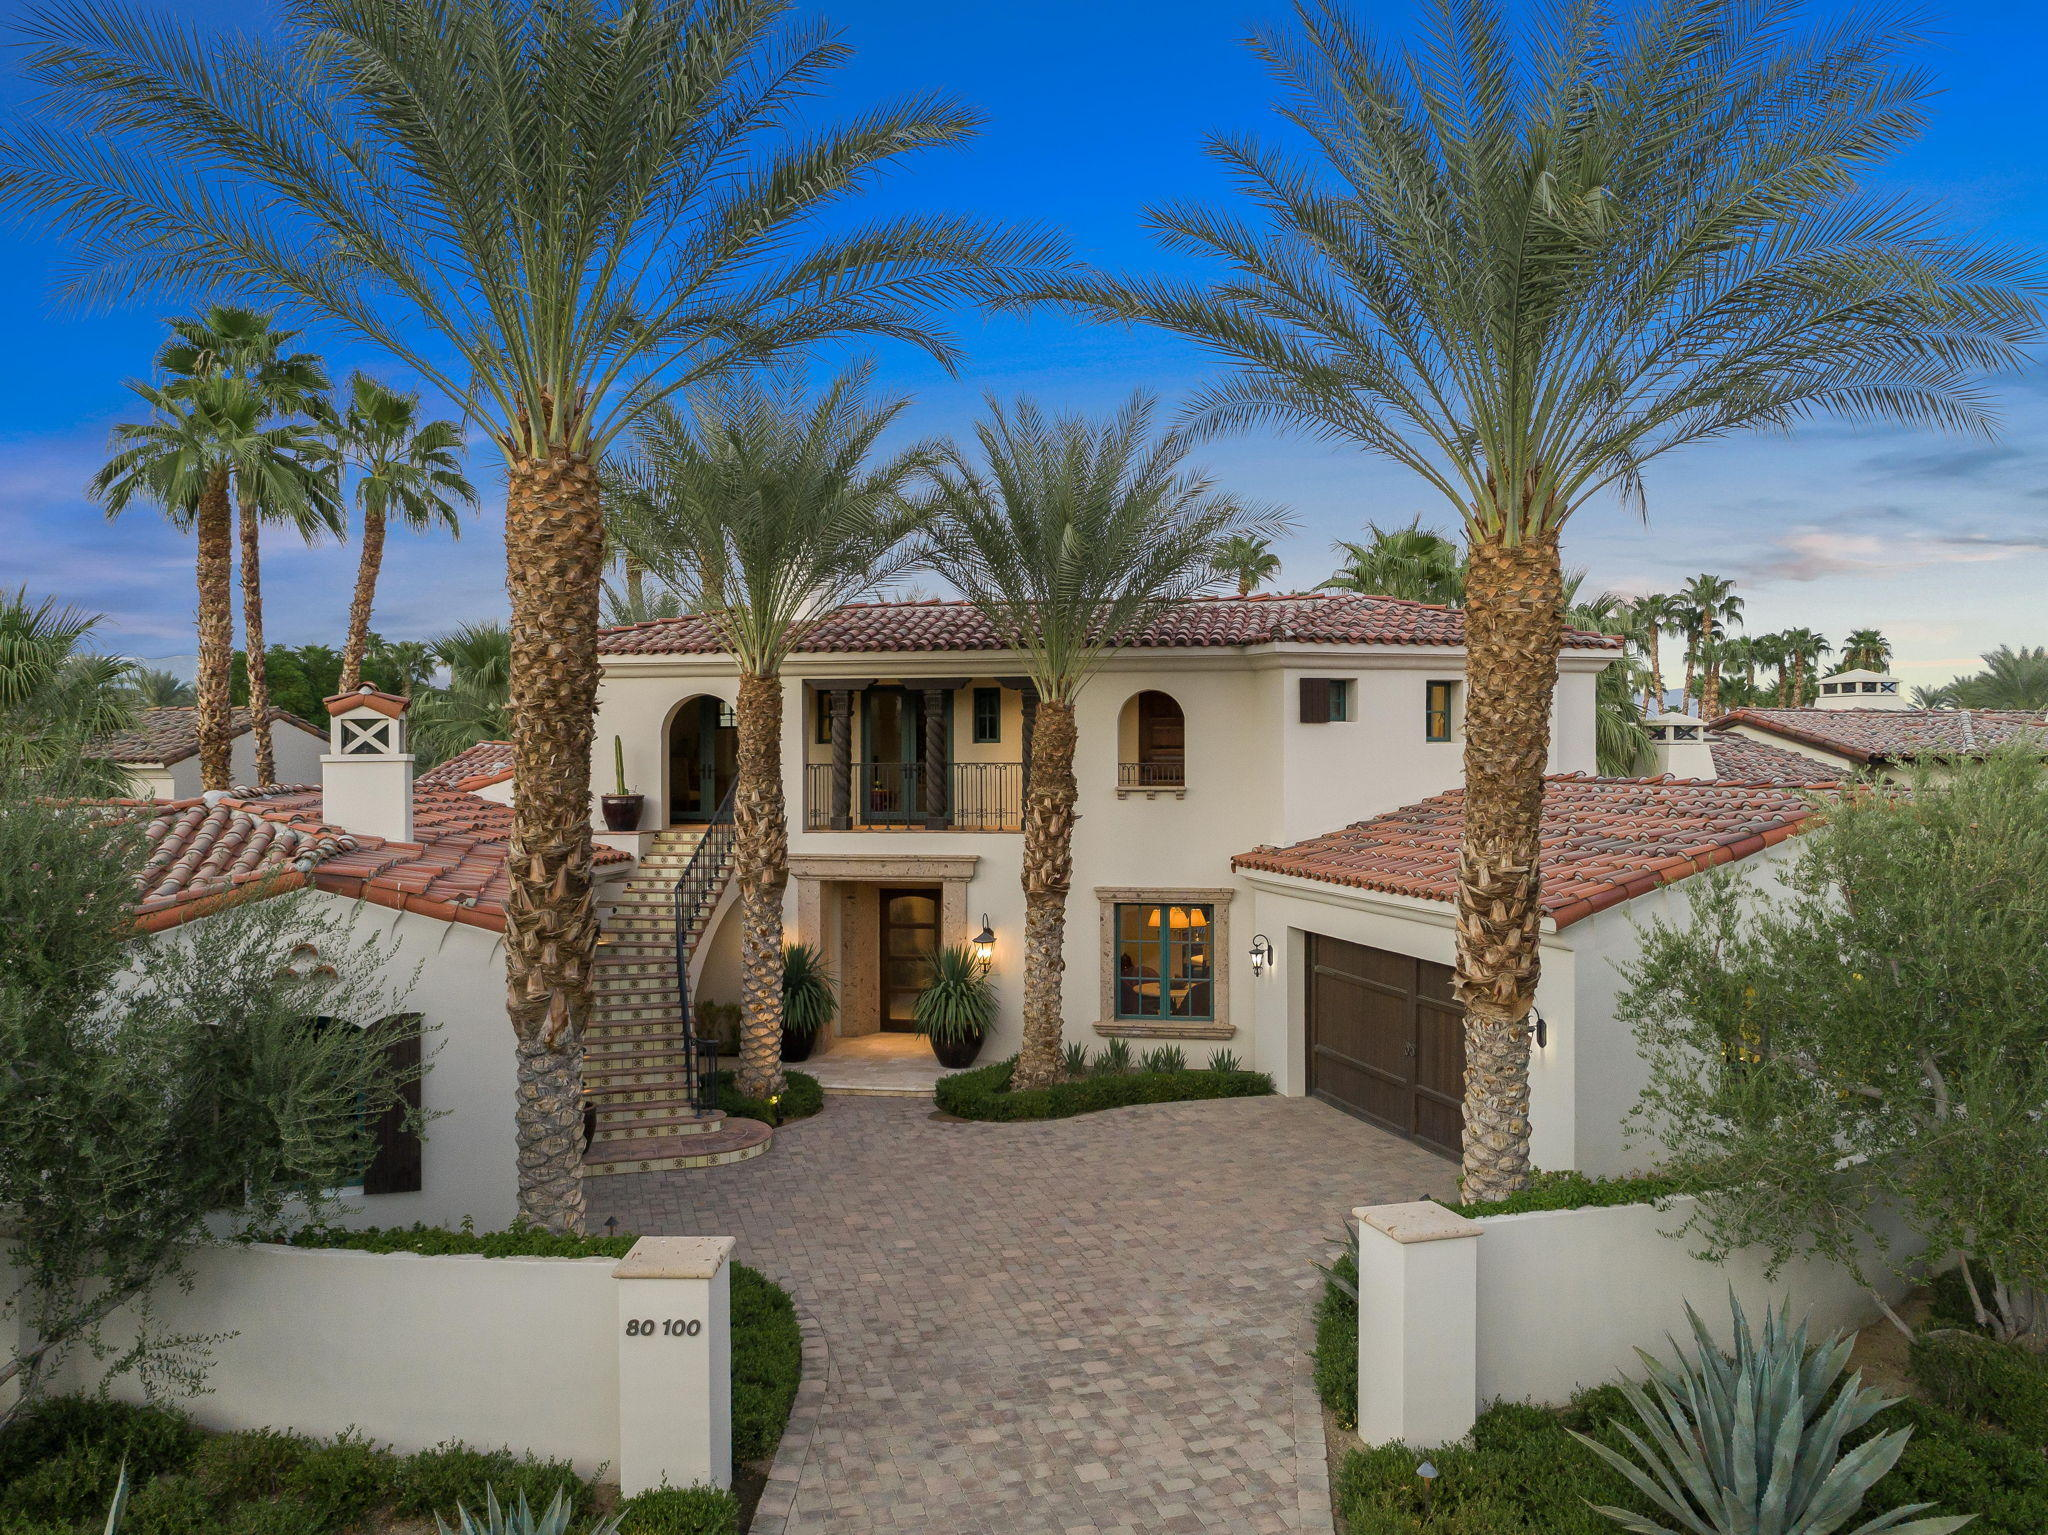 Photo of 80100 Via Pessaro, La Quinta, CA 92253